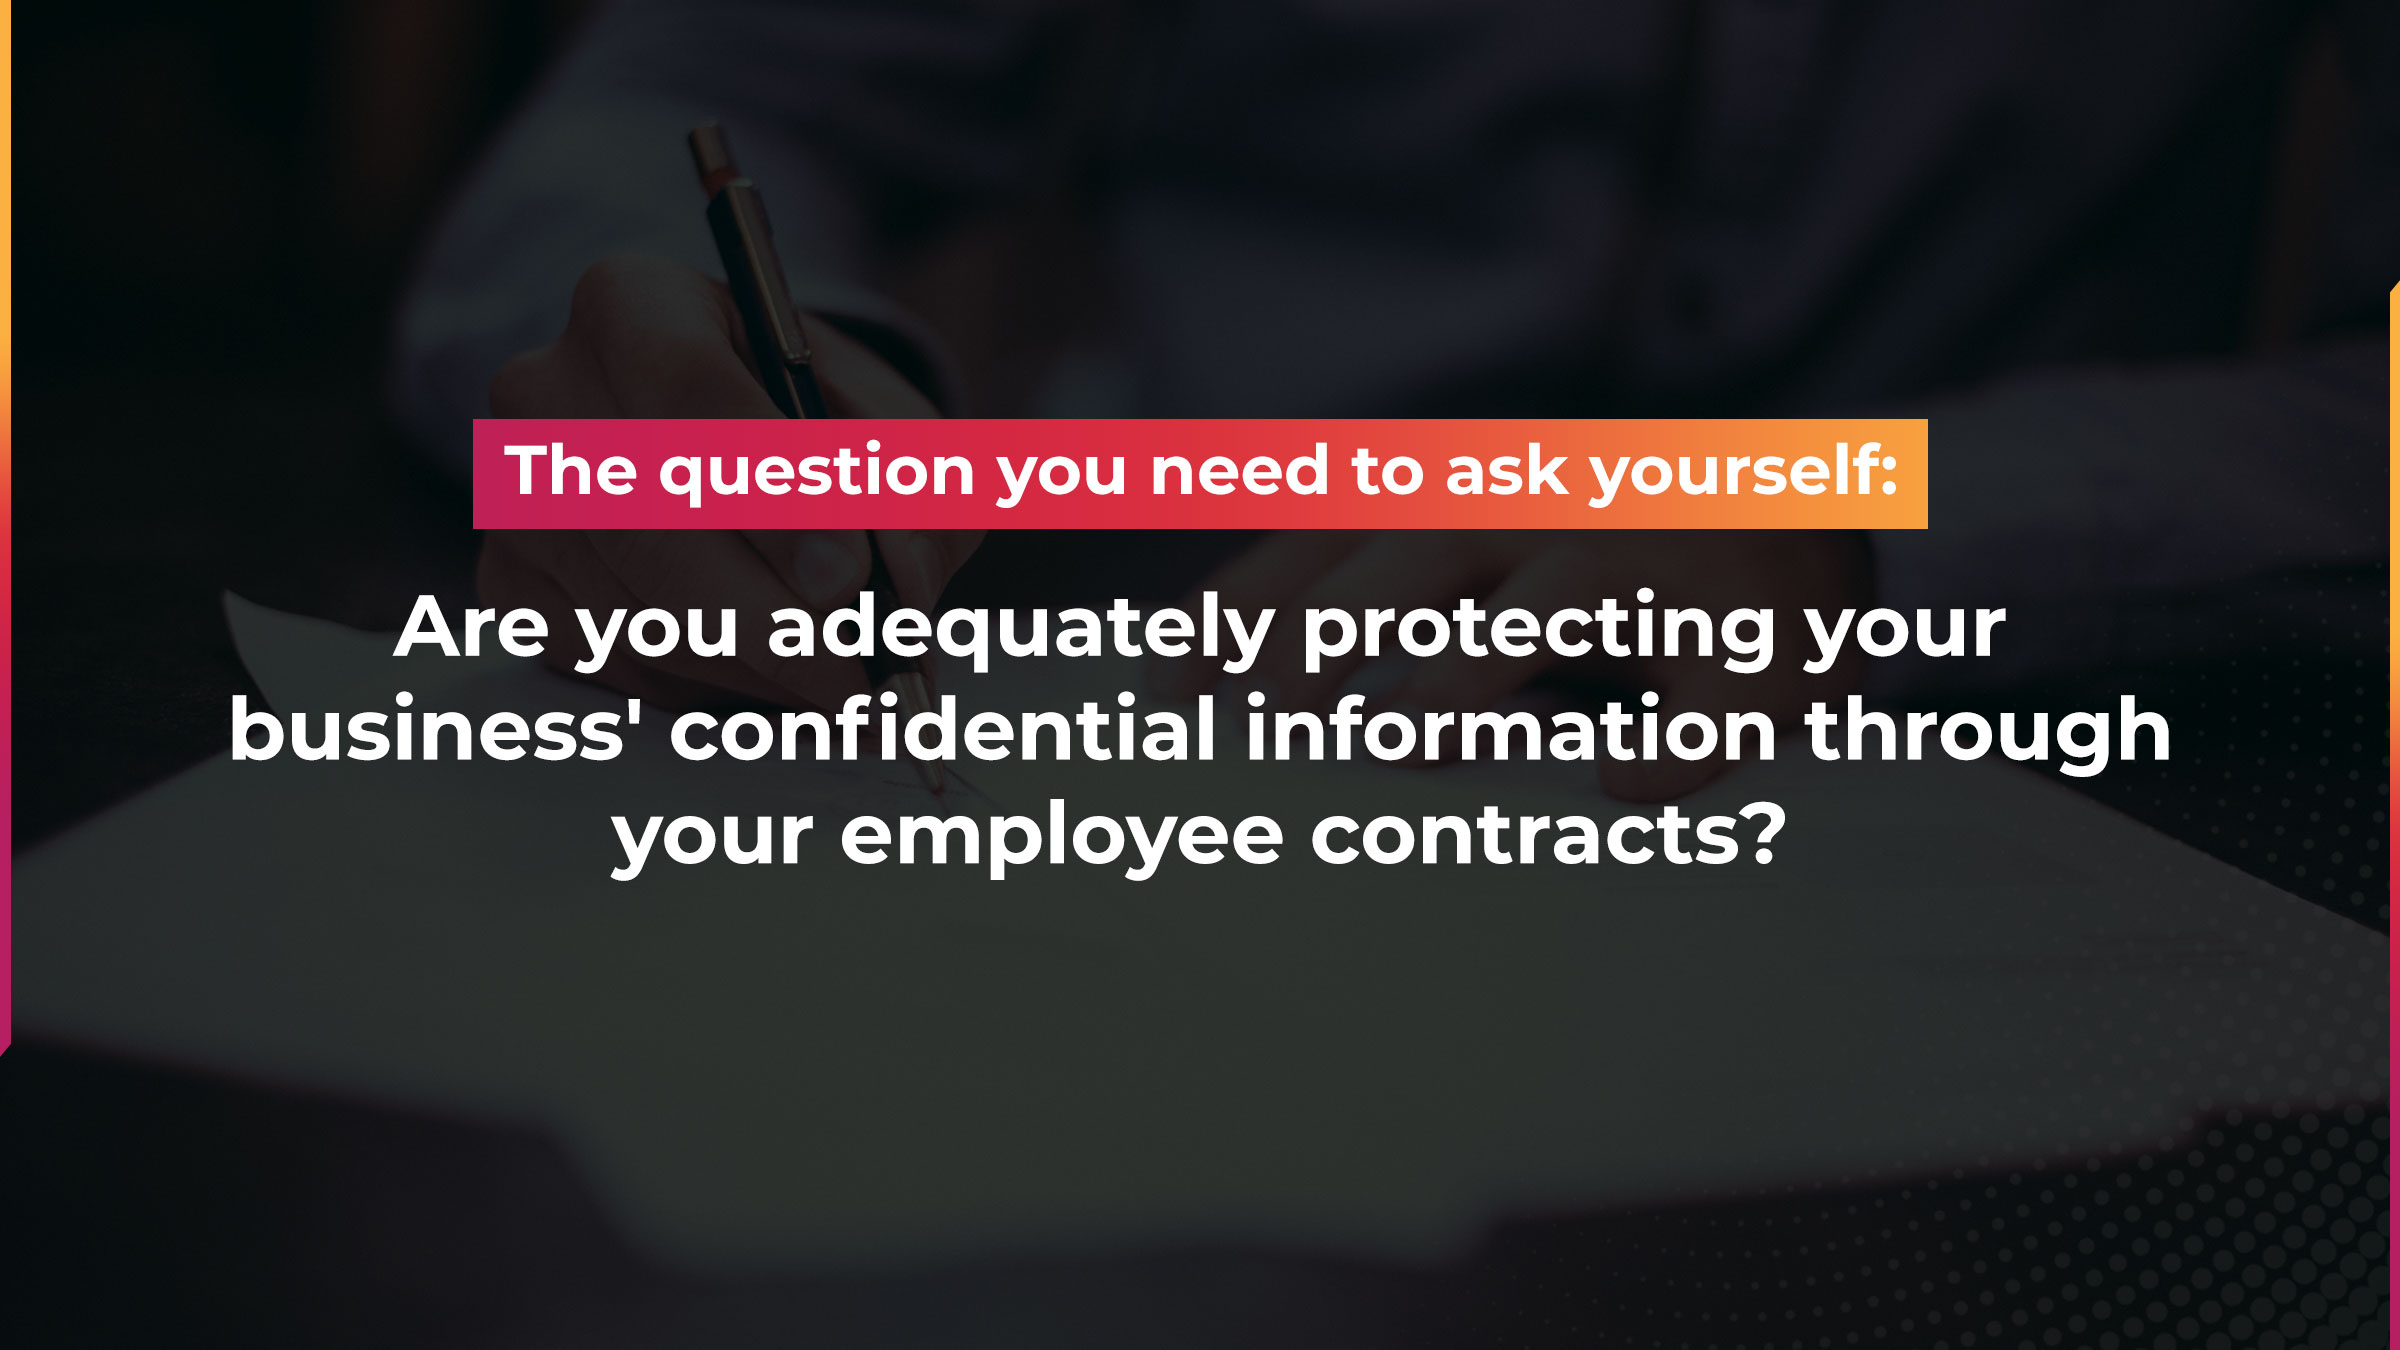 The question you need to ask yourself: are you adequately protecting your business' confidential information through your employee contracts?